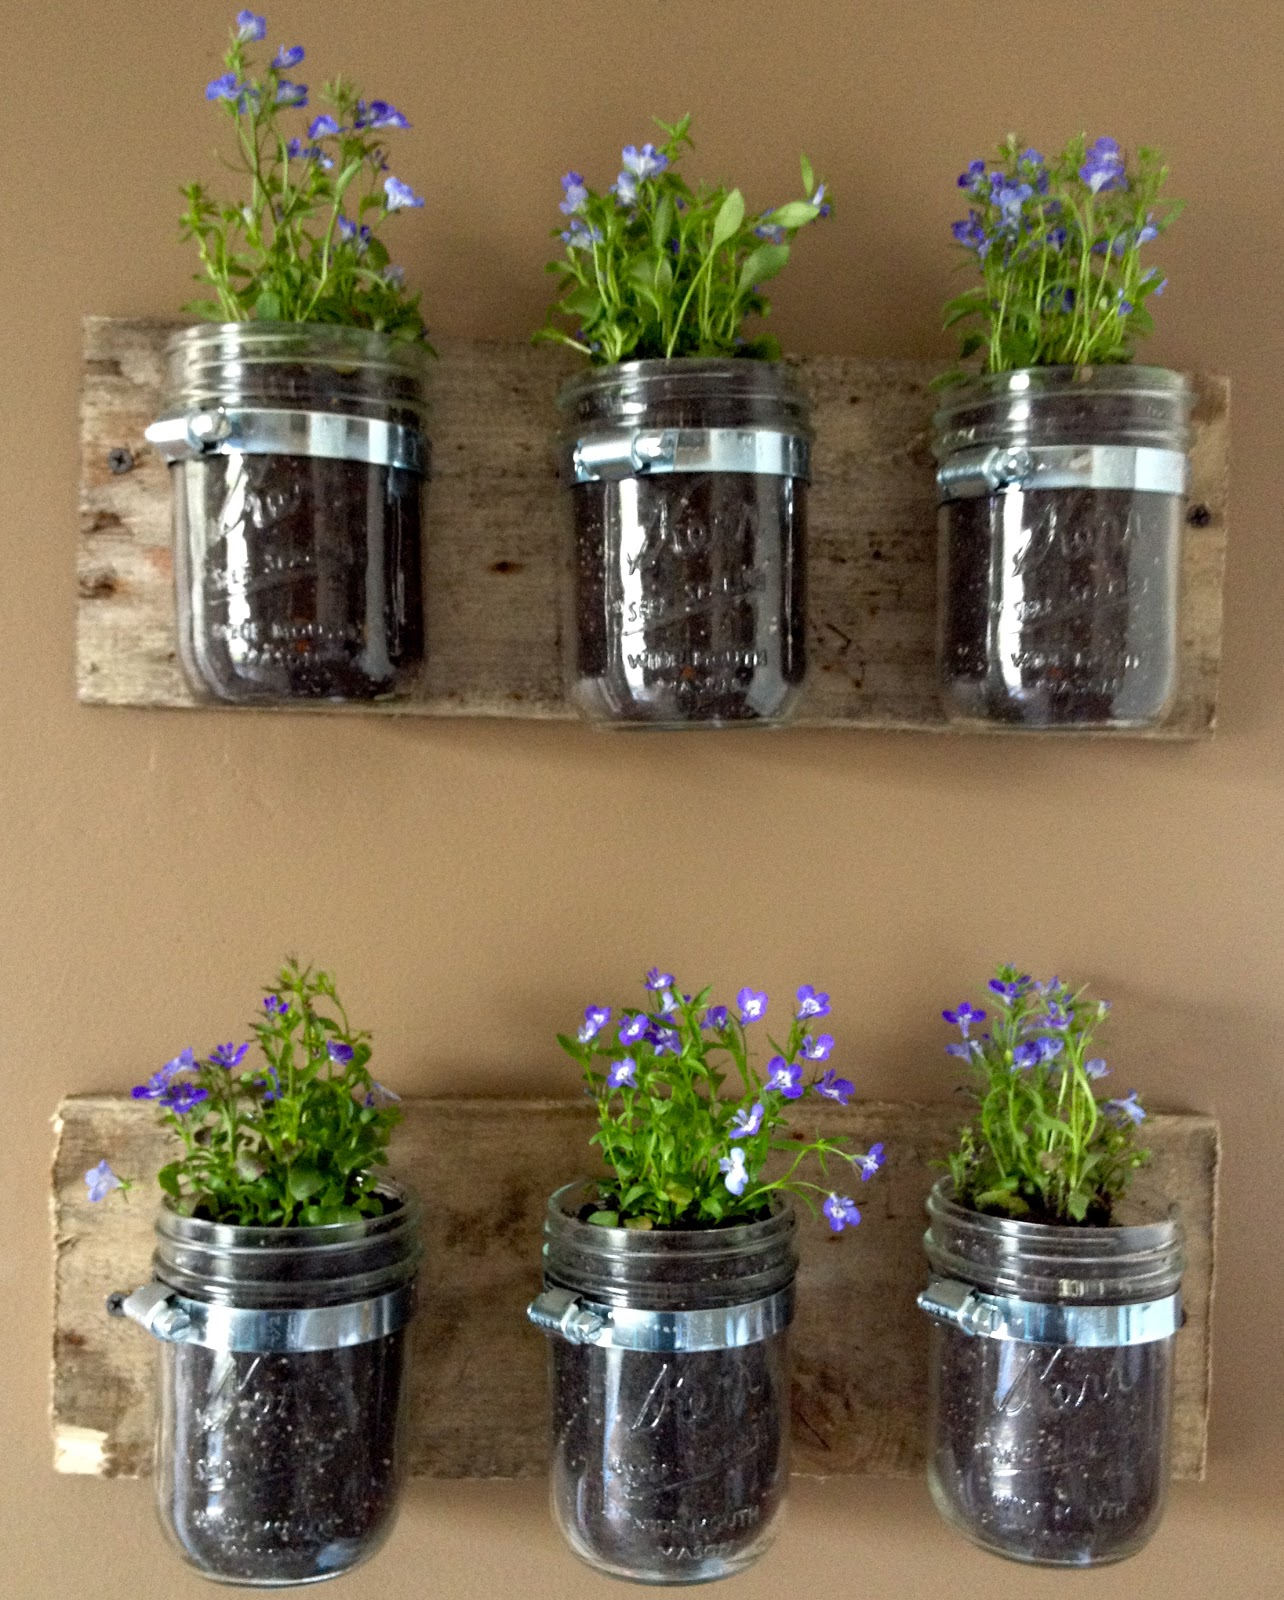 diy hanging wall planters from mason jars kasey trenum. Black Bedroom Furniture Sets. Home Design Ideas